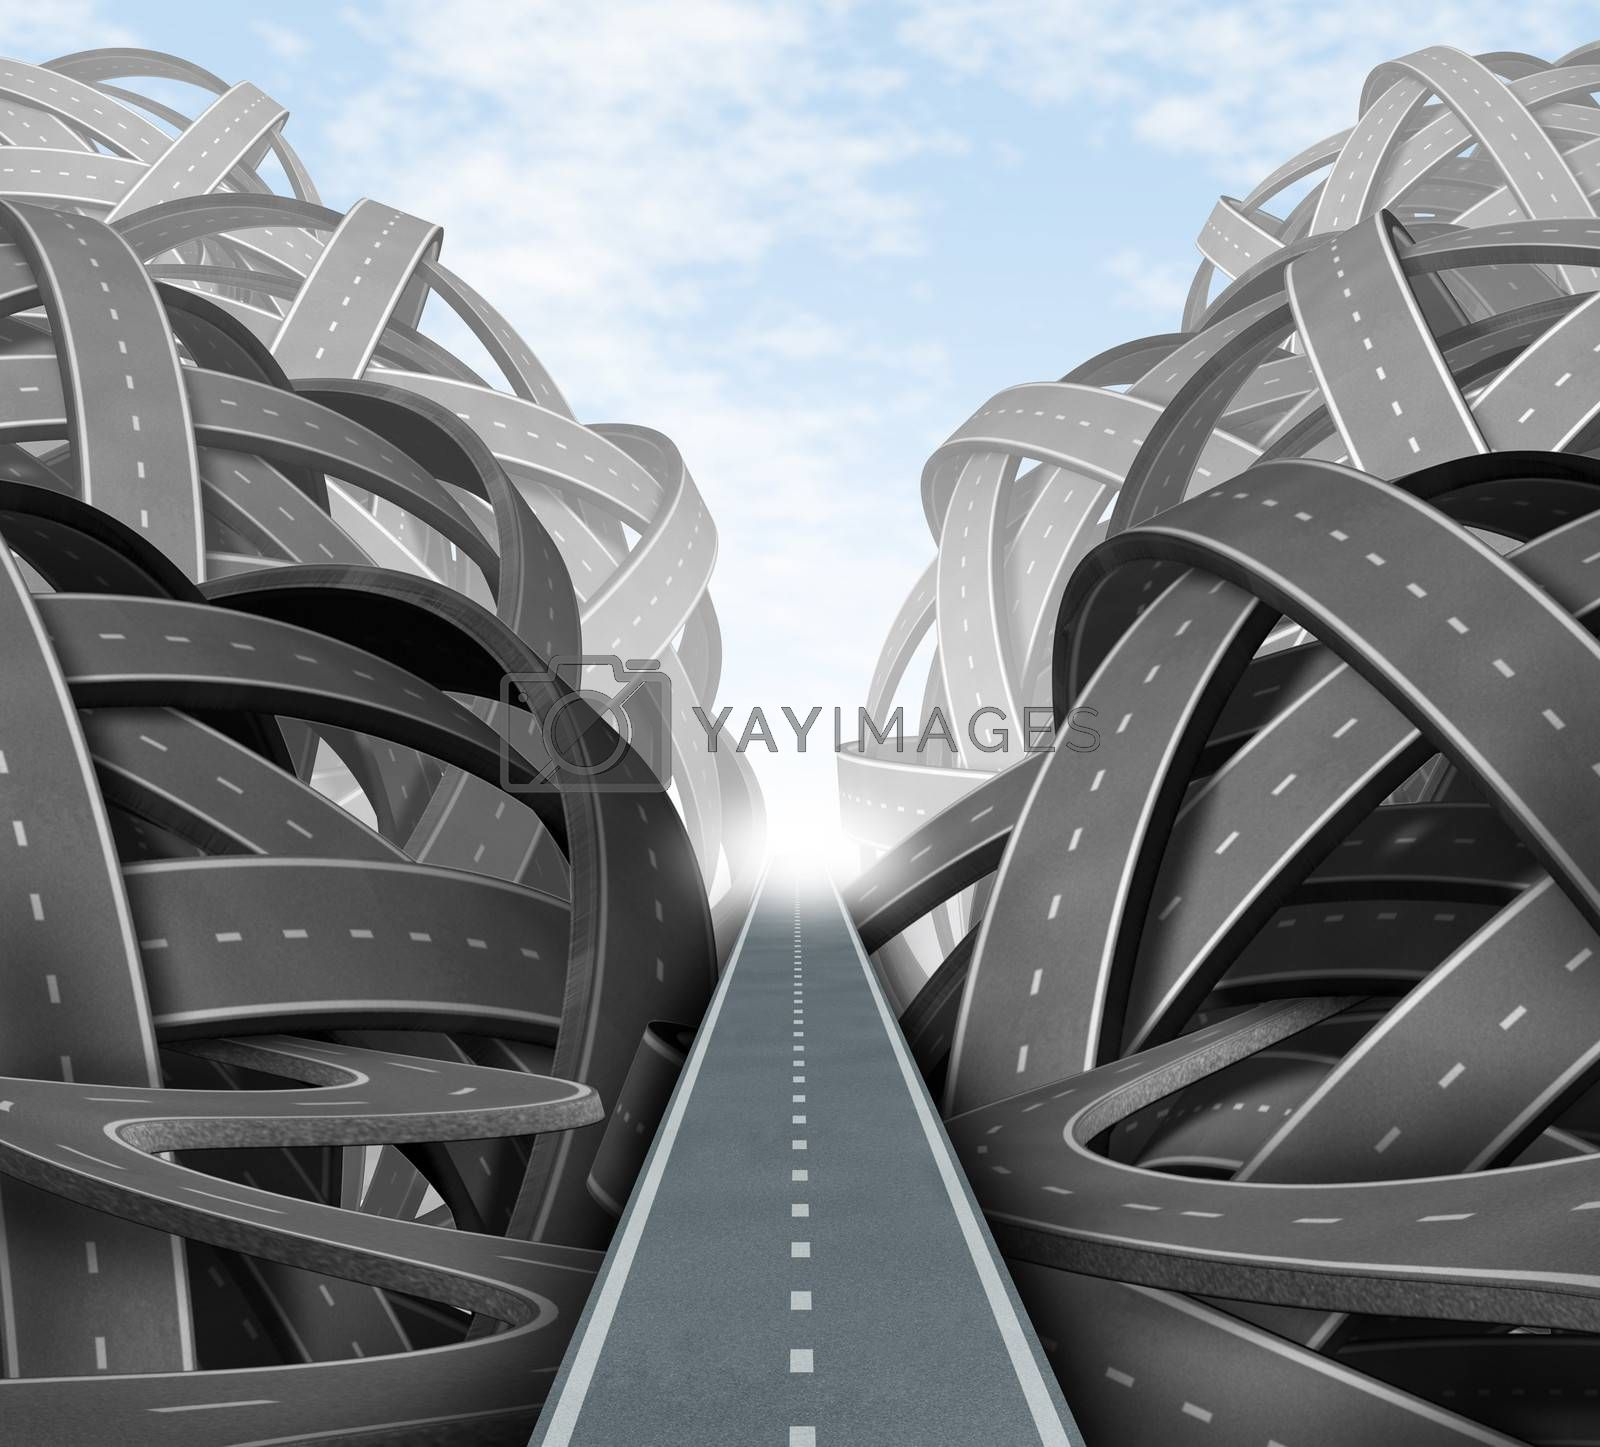 Cutting through the confusion with clear strategy and solutions for business leadership with a straight path to success choosing the right strategic path through a maze of tangled roads and highways.